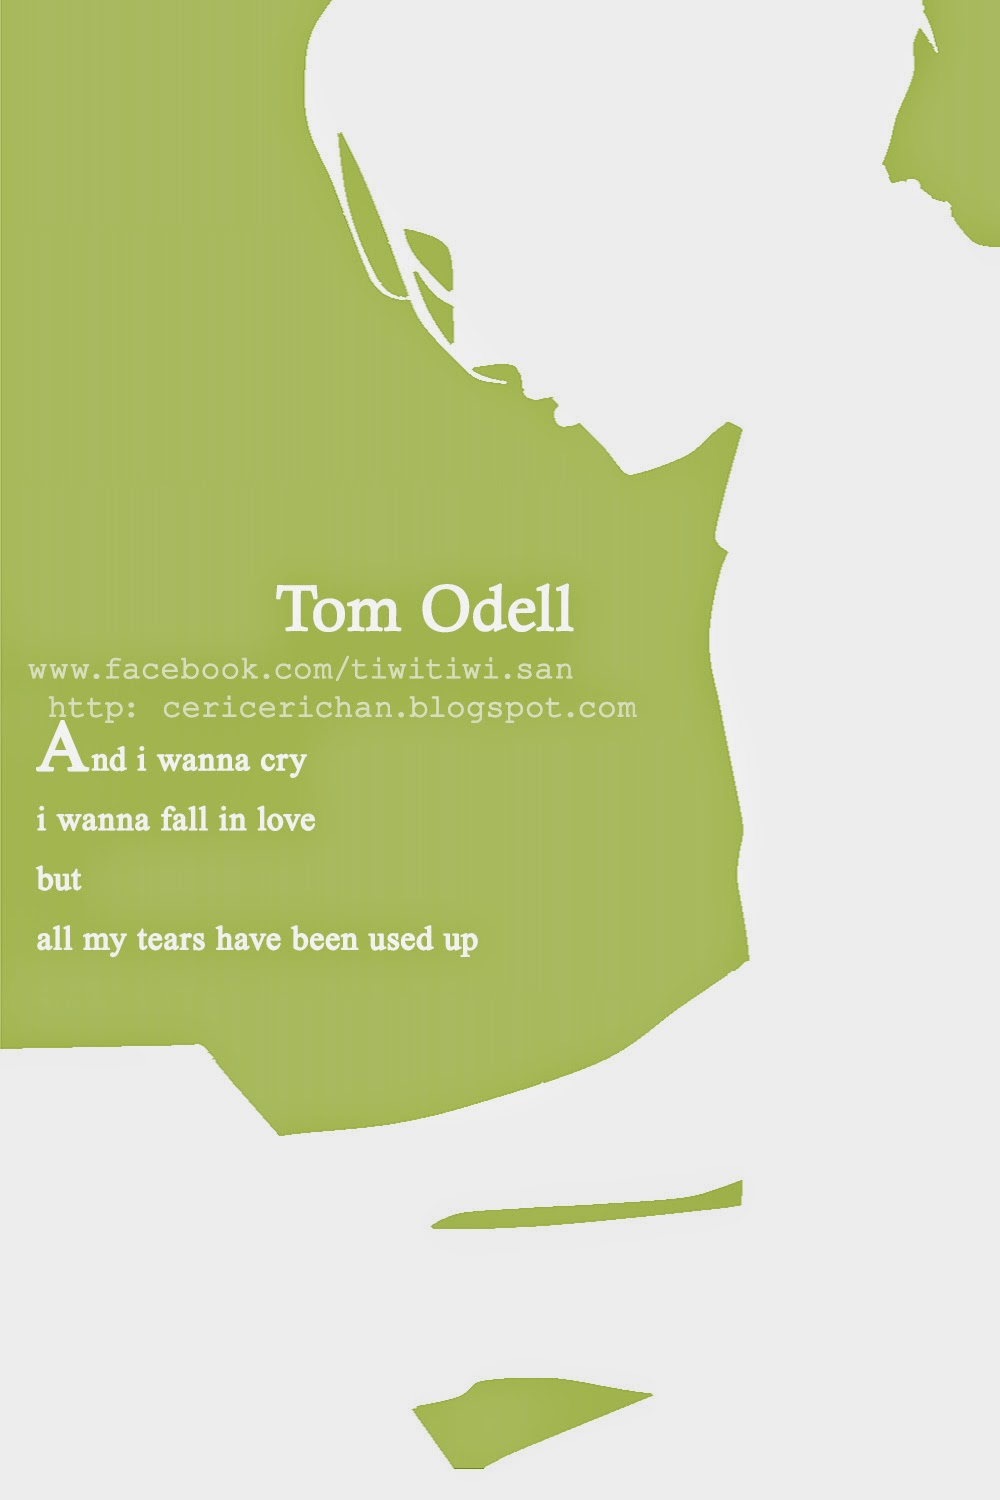 TOM ODELL, WALLPAPER, PAINT TOOL SAI, SILUET